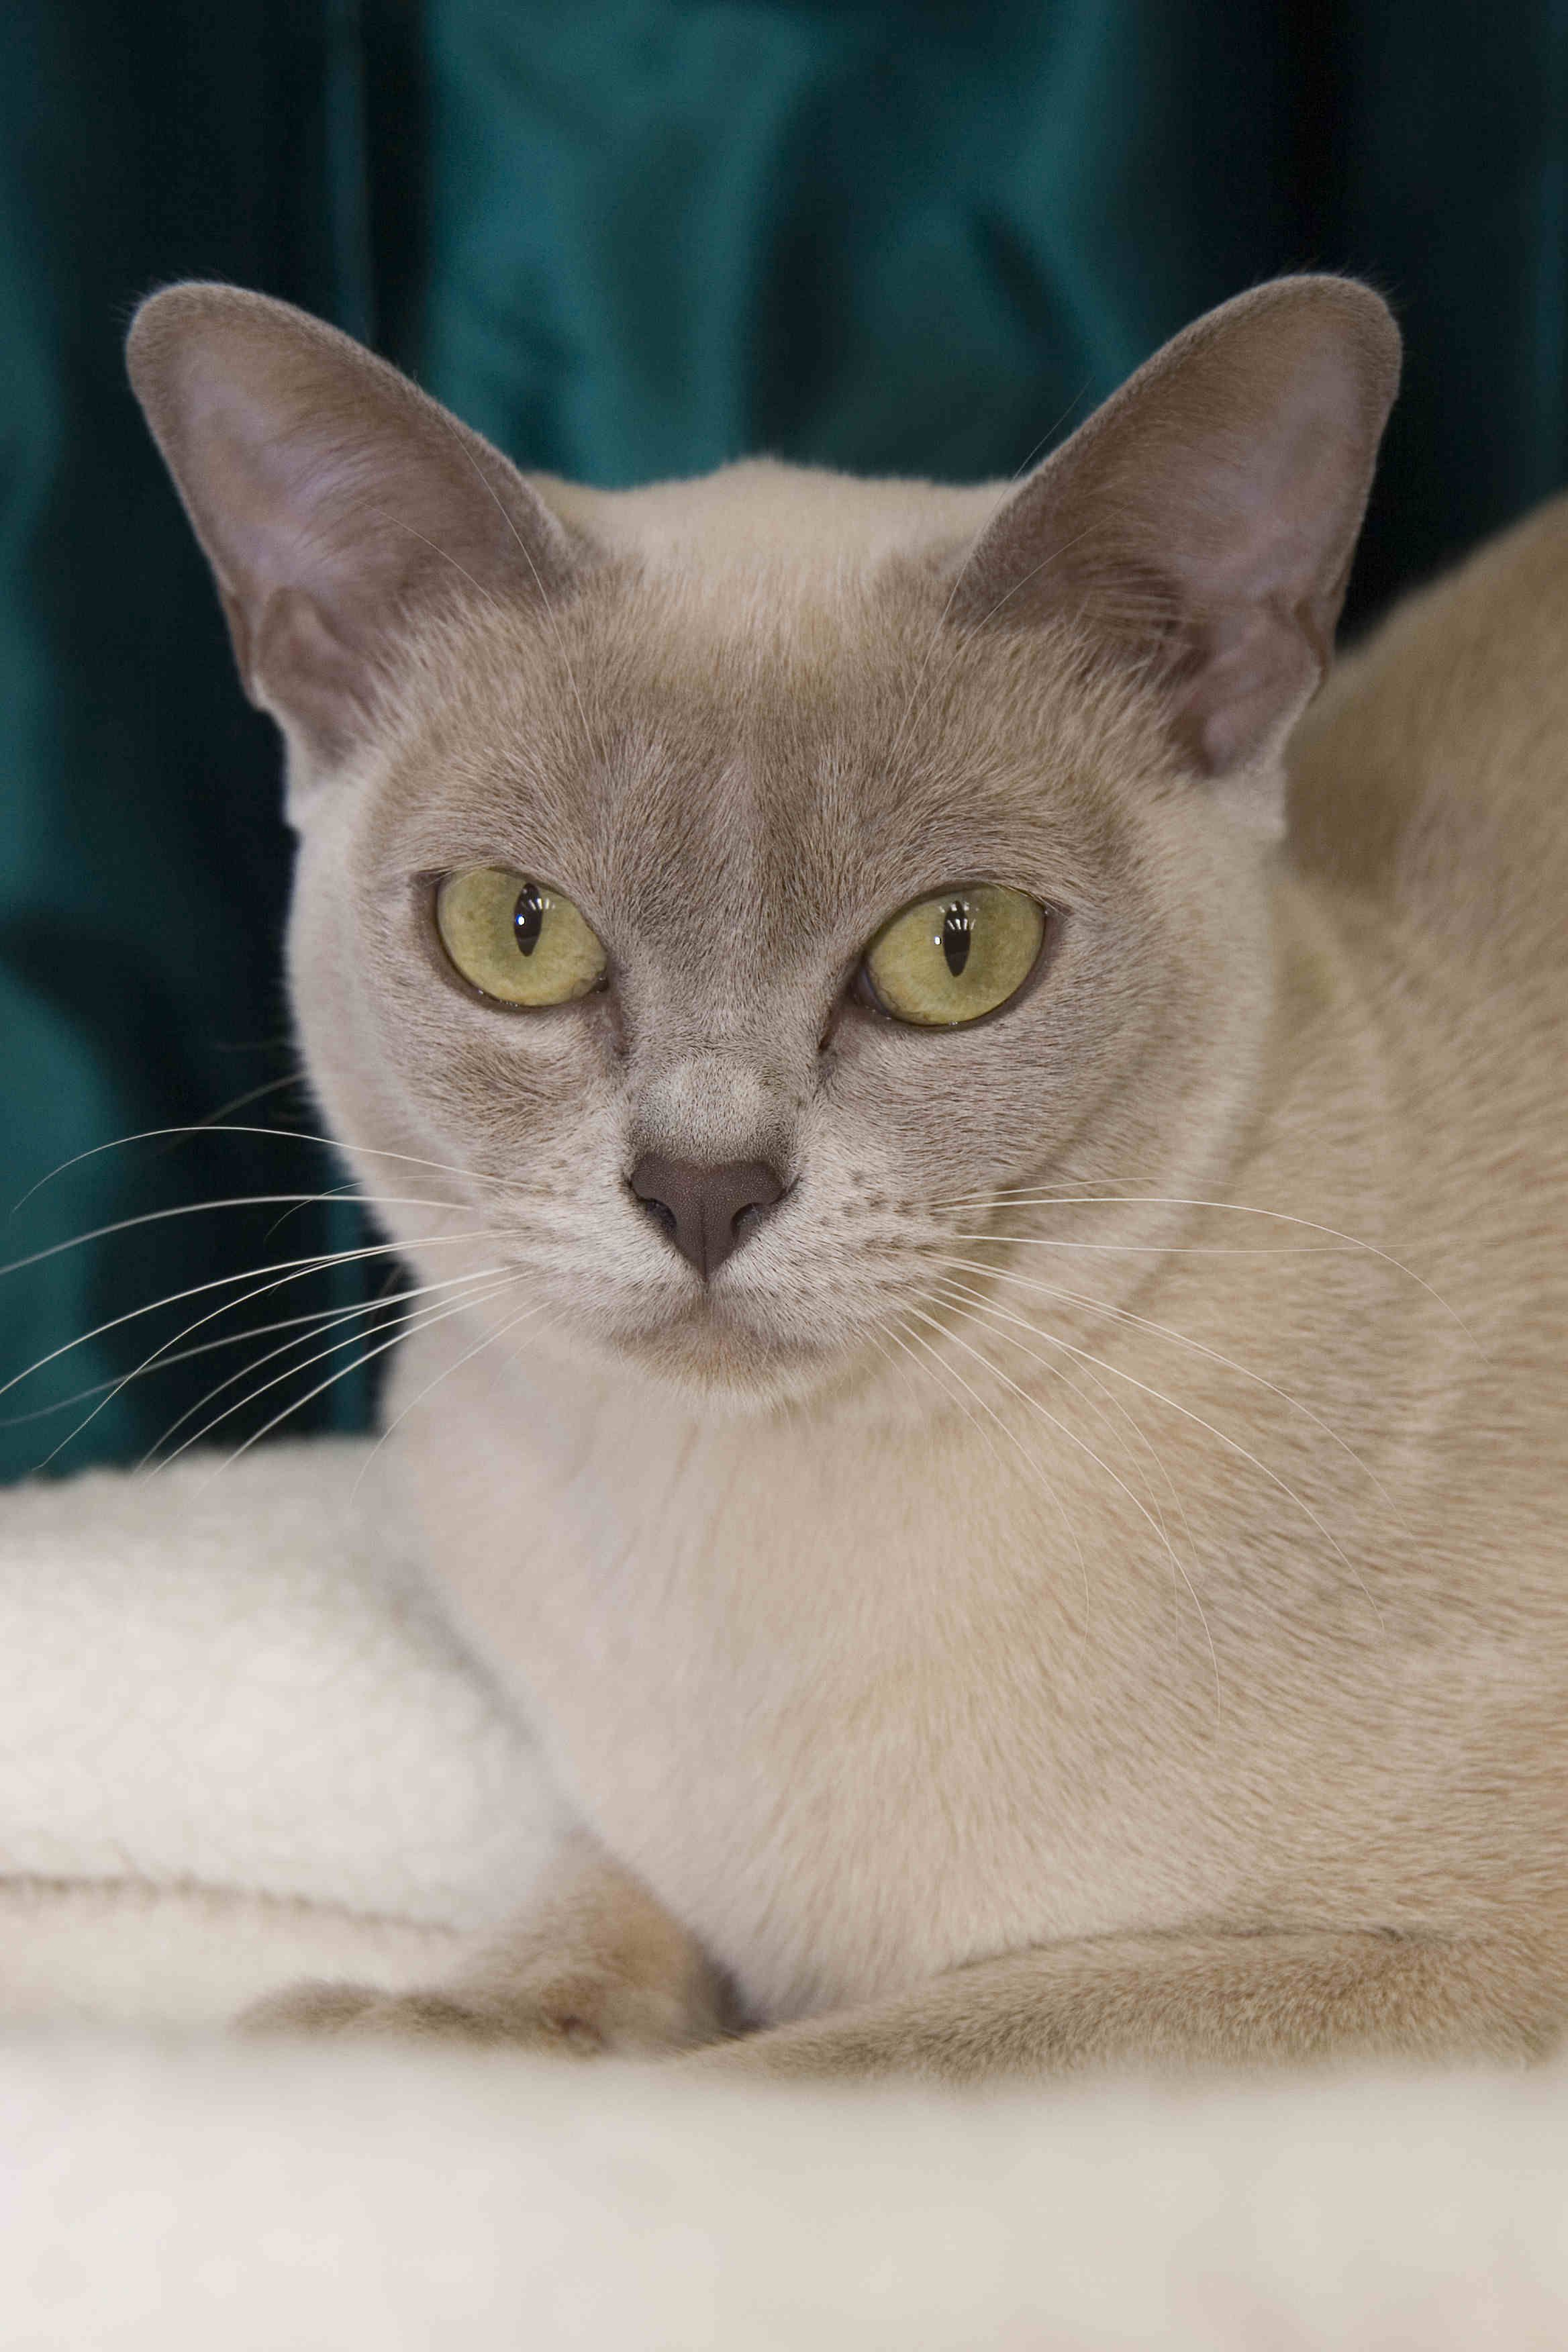 Sykris Burmese Cats Burmese cat, cats, Cats and